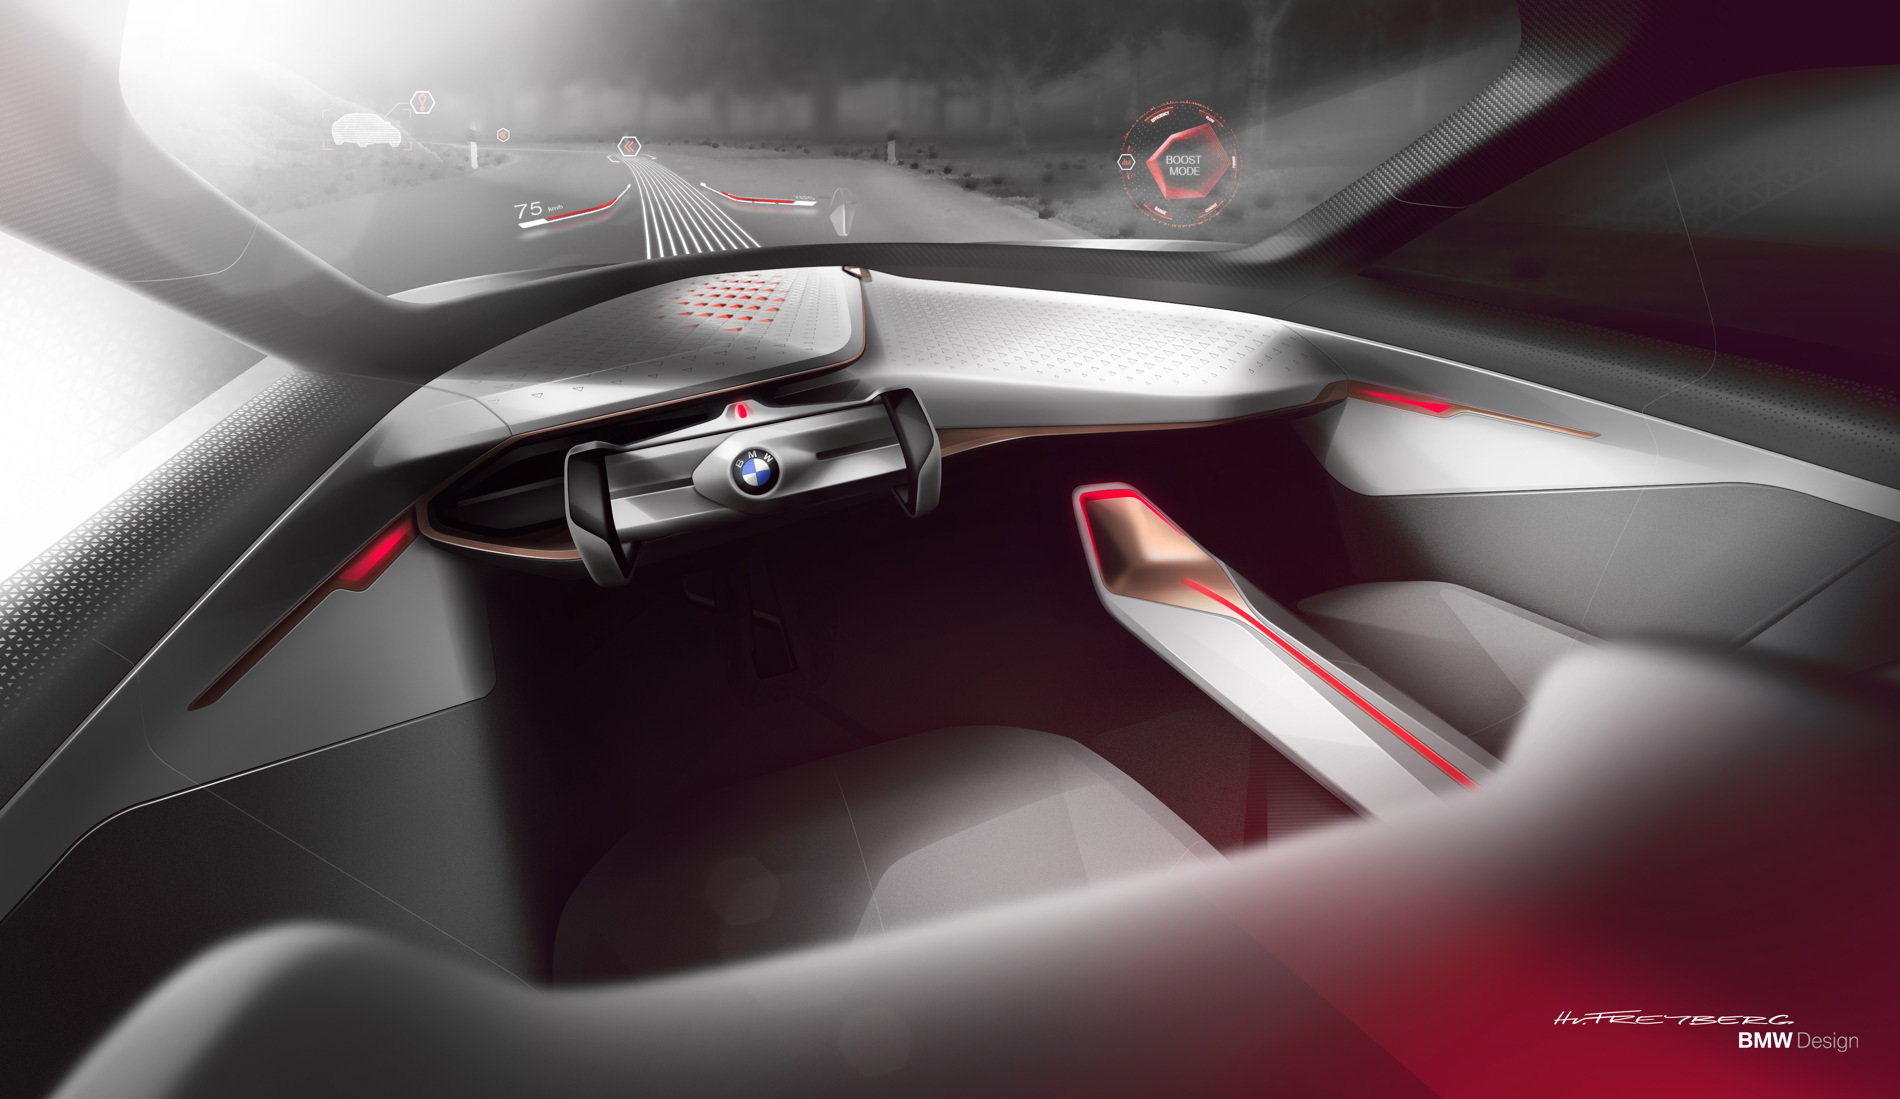 BMW Vision Next 100: Full-size Head-Up Display with Augmented Reality